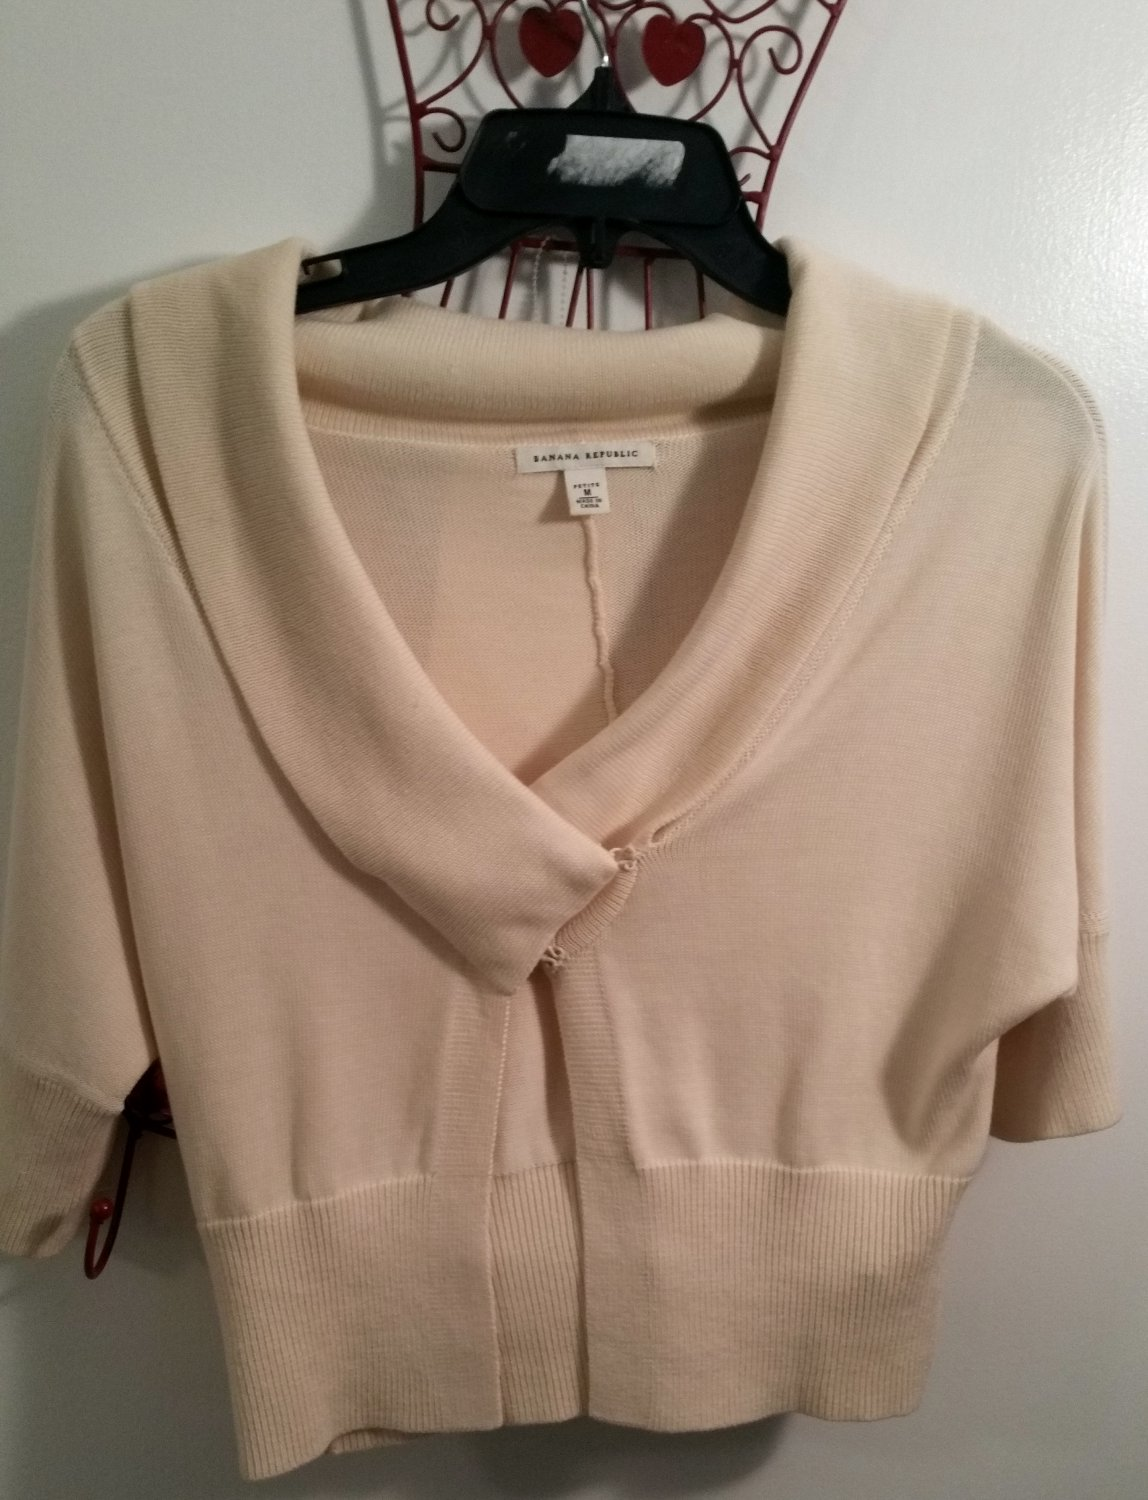 Banana Republic Half Sleeve Shrug Bolero Knit Cardigan